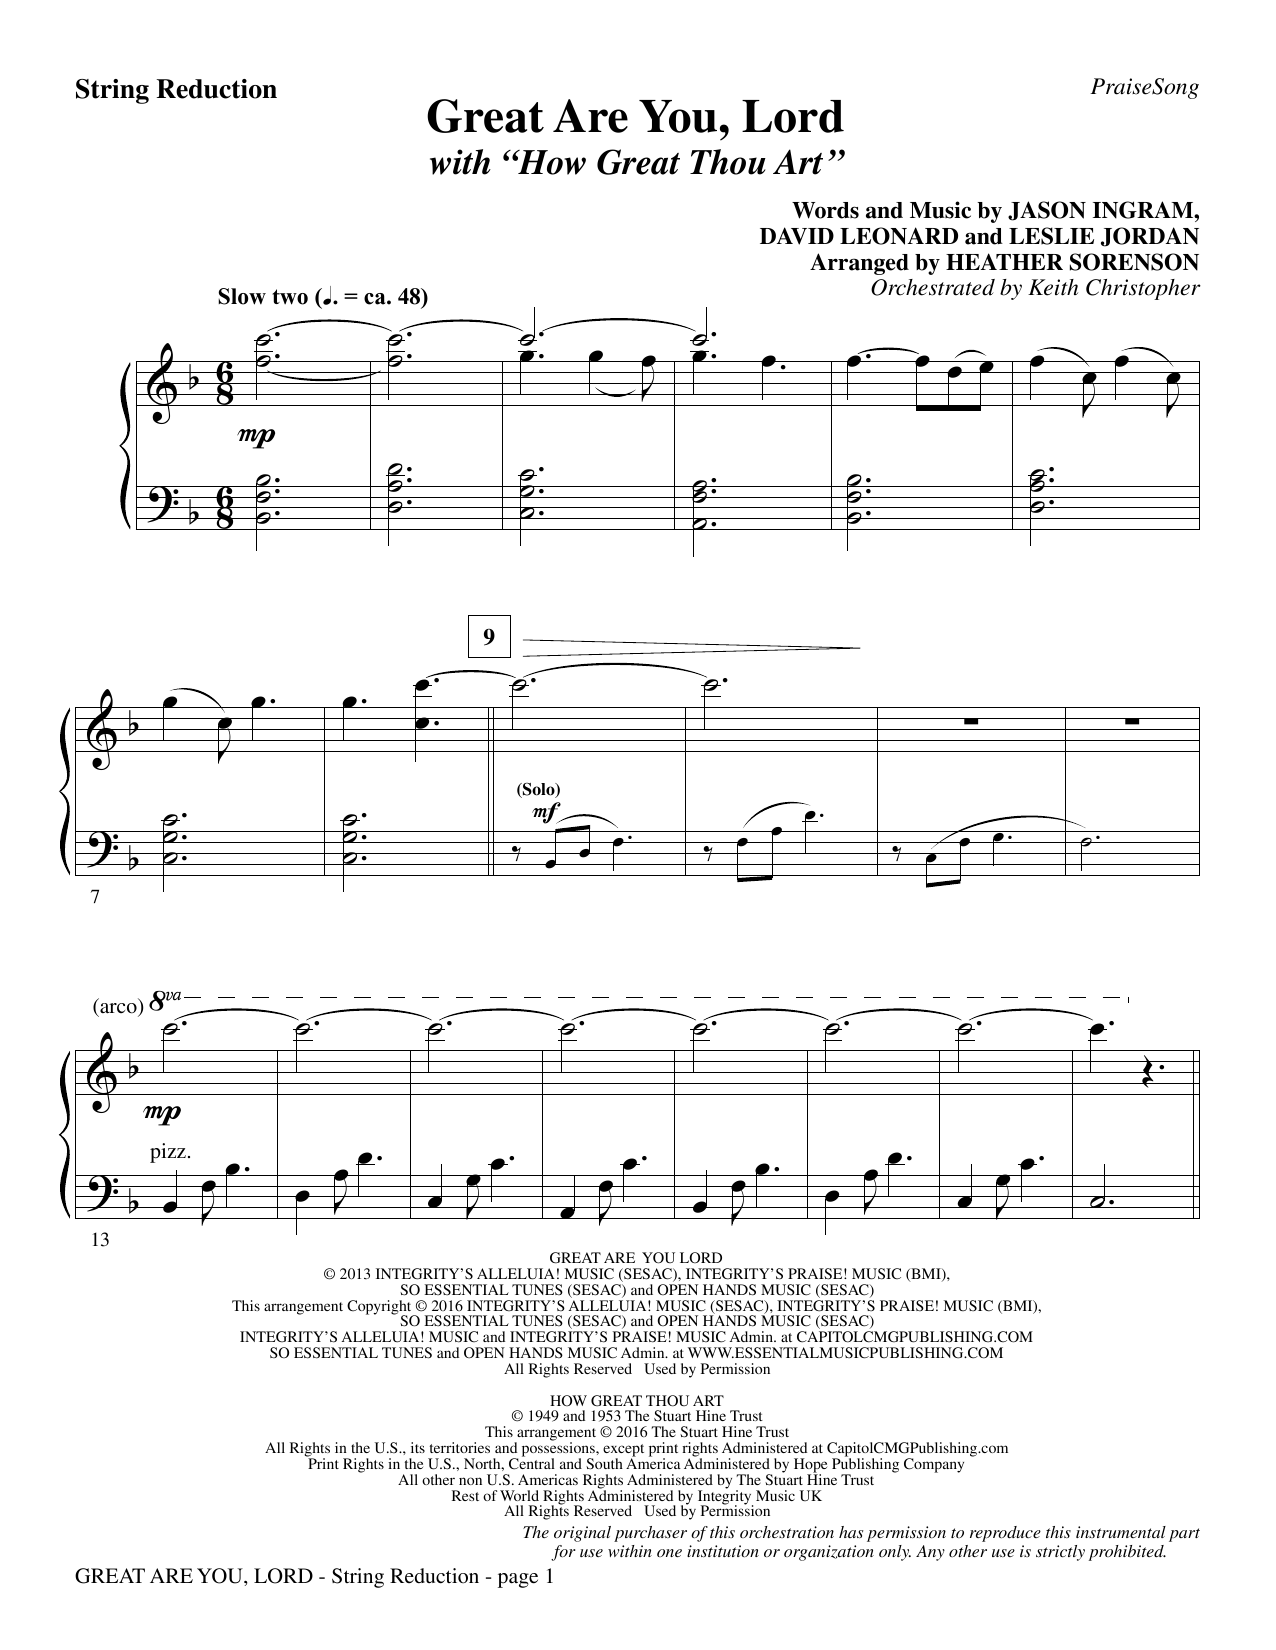 Great Are You Lord (with How Great Thou Art) - Keyboard String Reduction Sheet Music